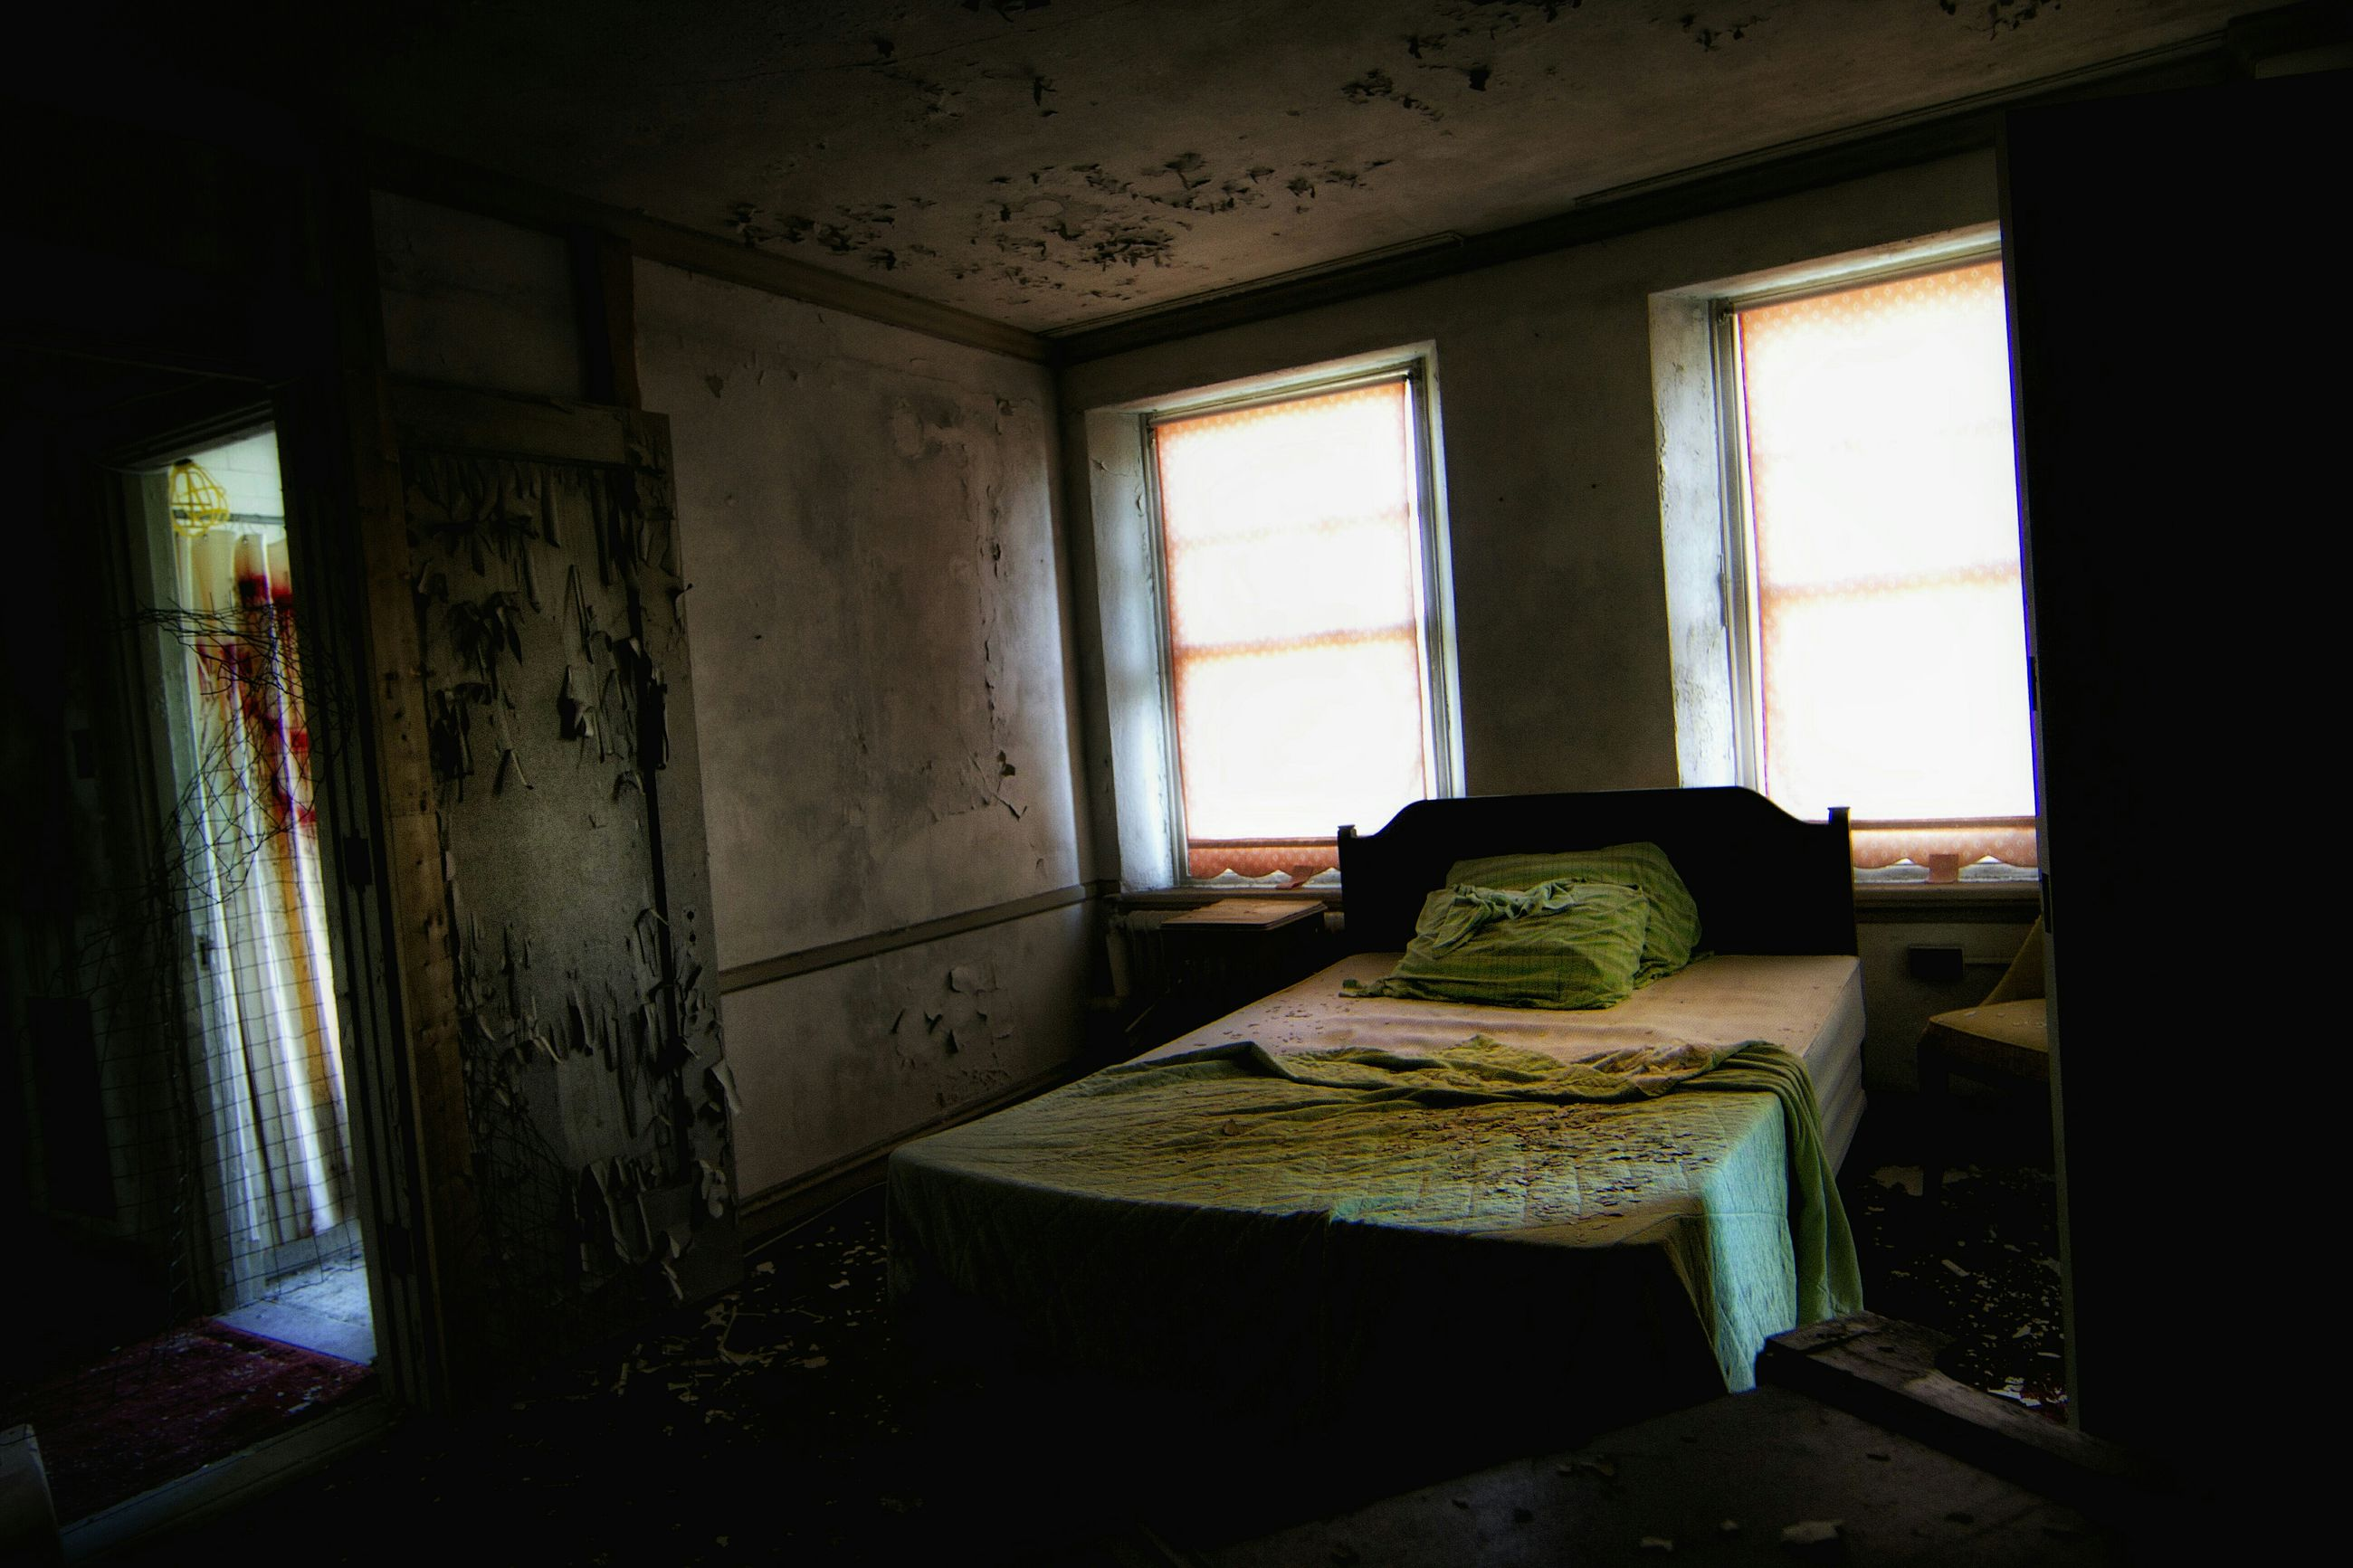 indoors, window, abandoned, interior, obsolete, damaged, home interior, old, run-down, deterioration, absence, empty, architecture, house, built structure, room, messy, bad condition, broken, chair